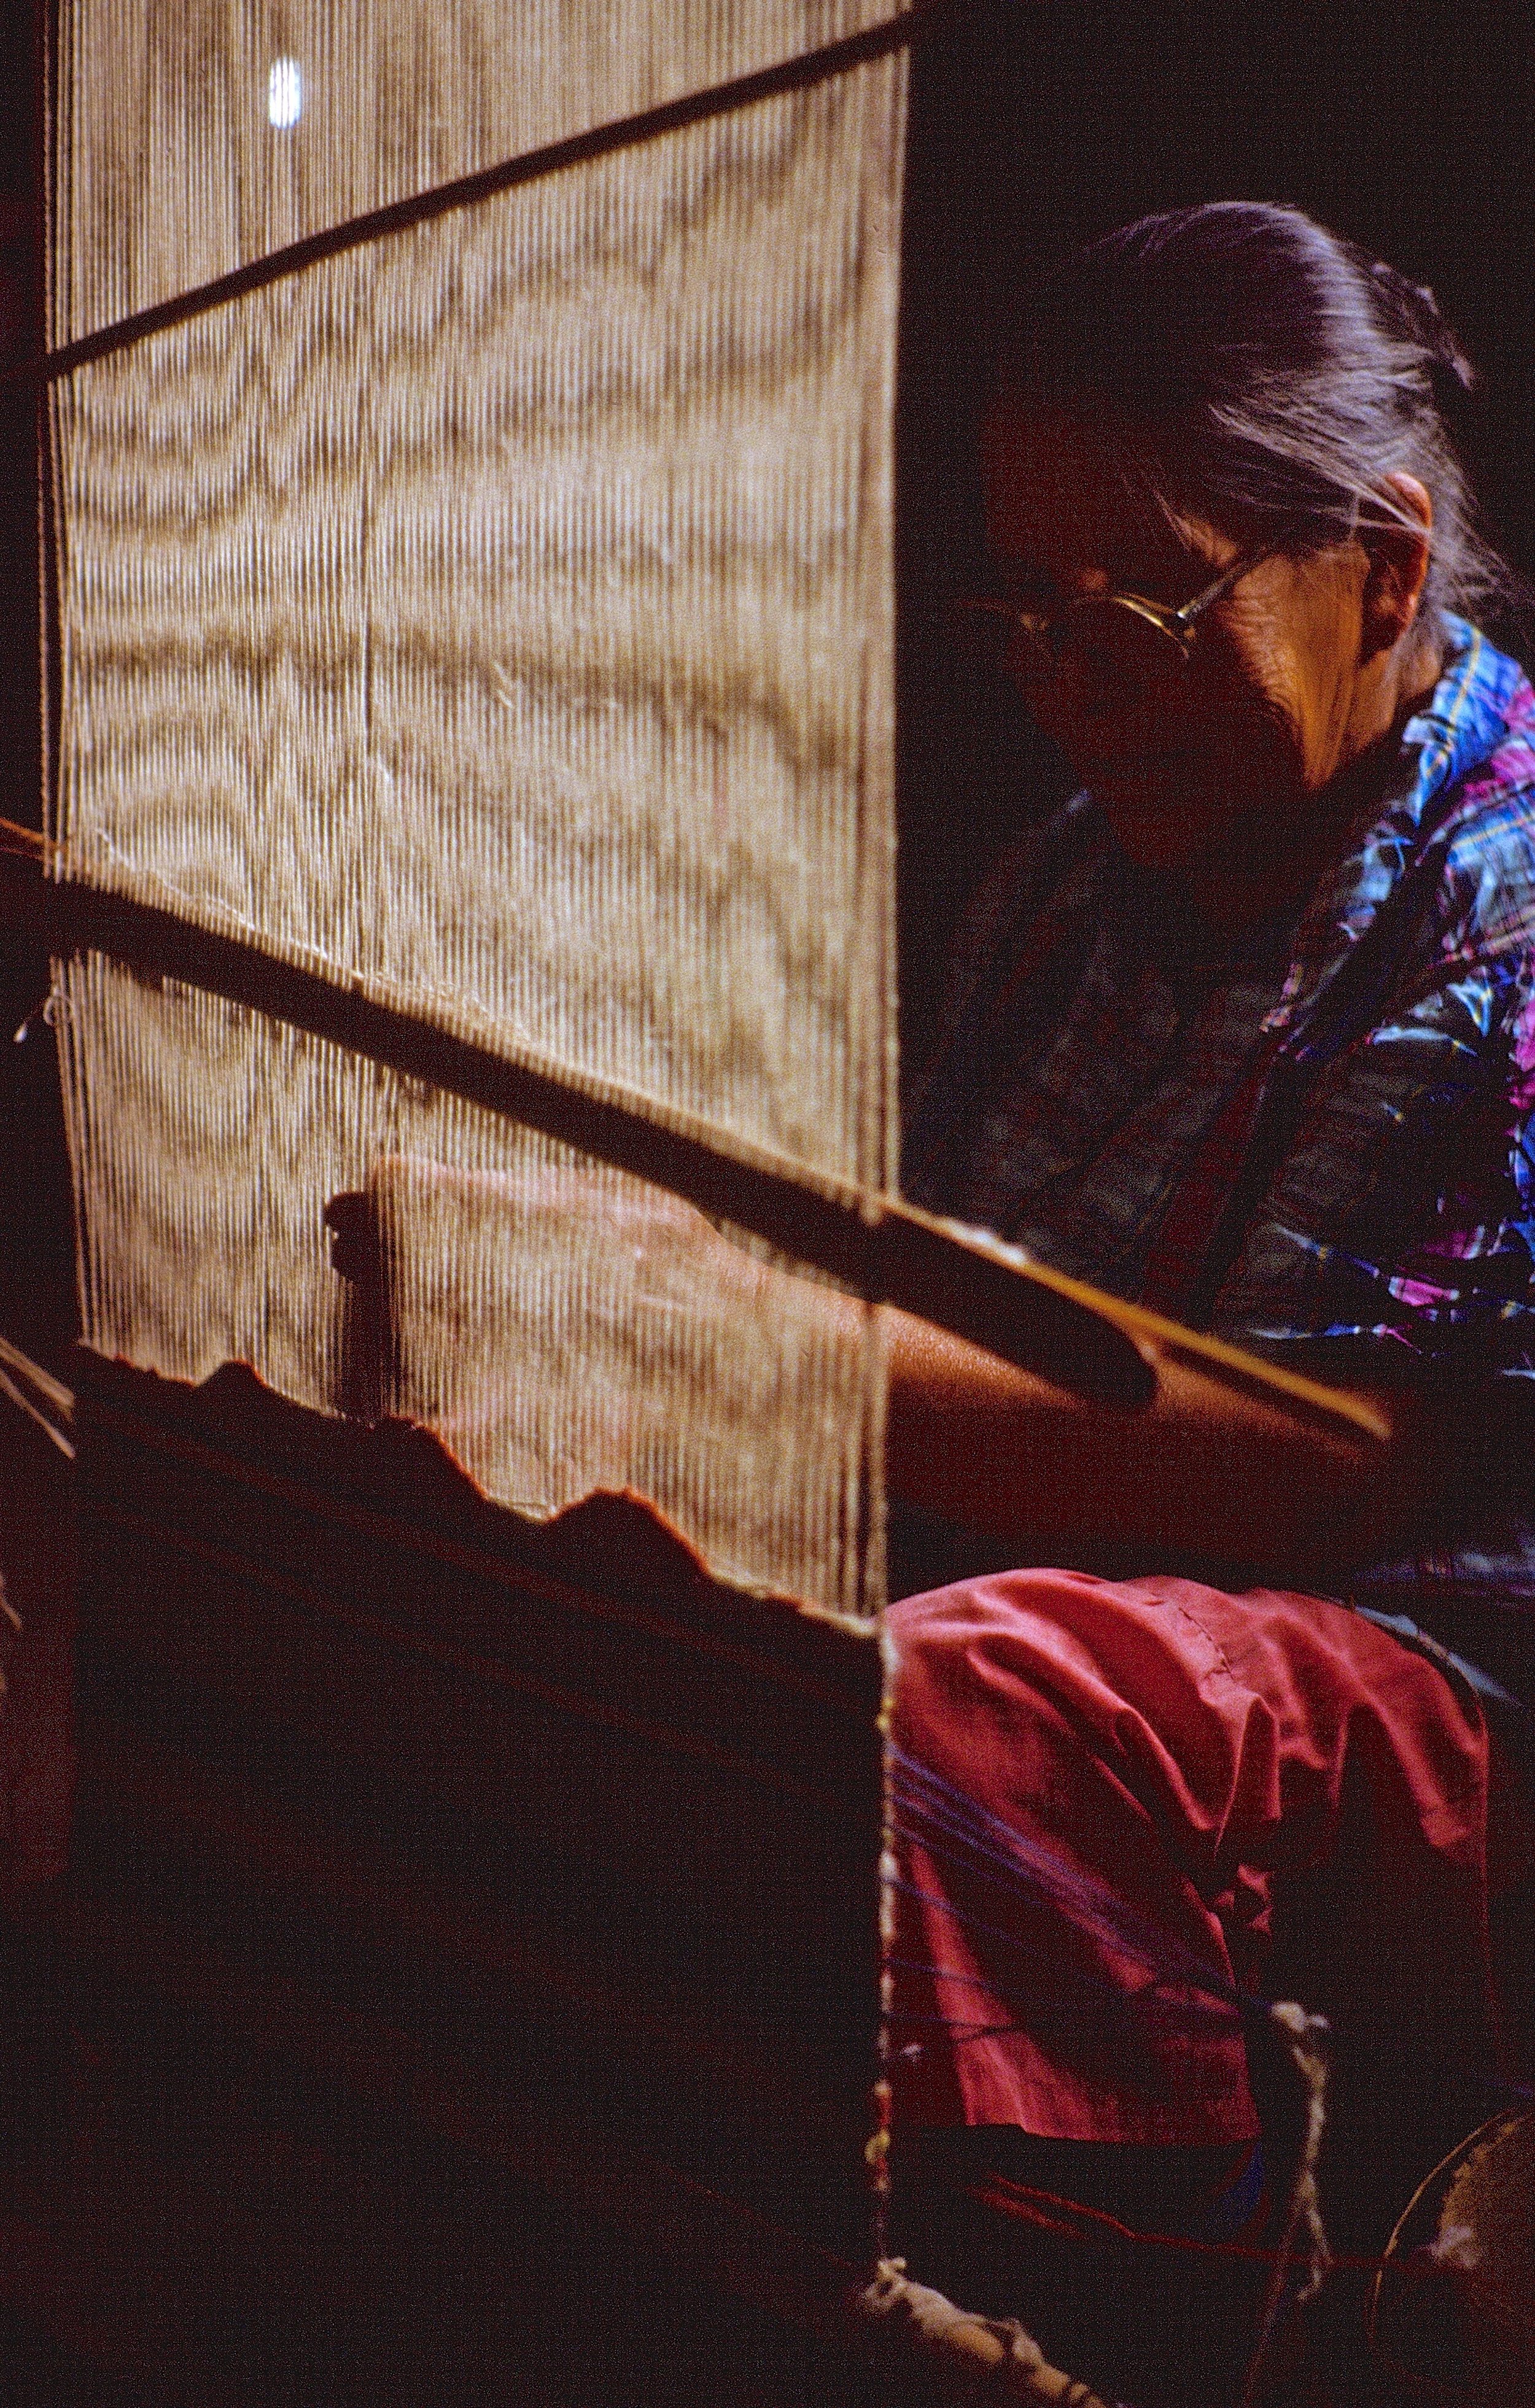 Mabel Woodman weaving by the light of a kerosine lamp and a wood stove (1984-85)